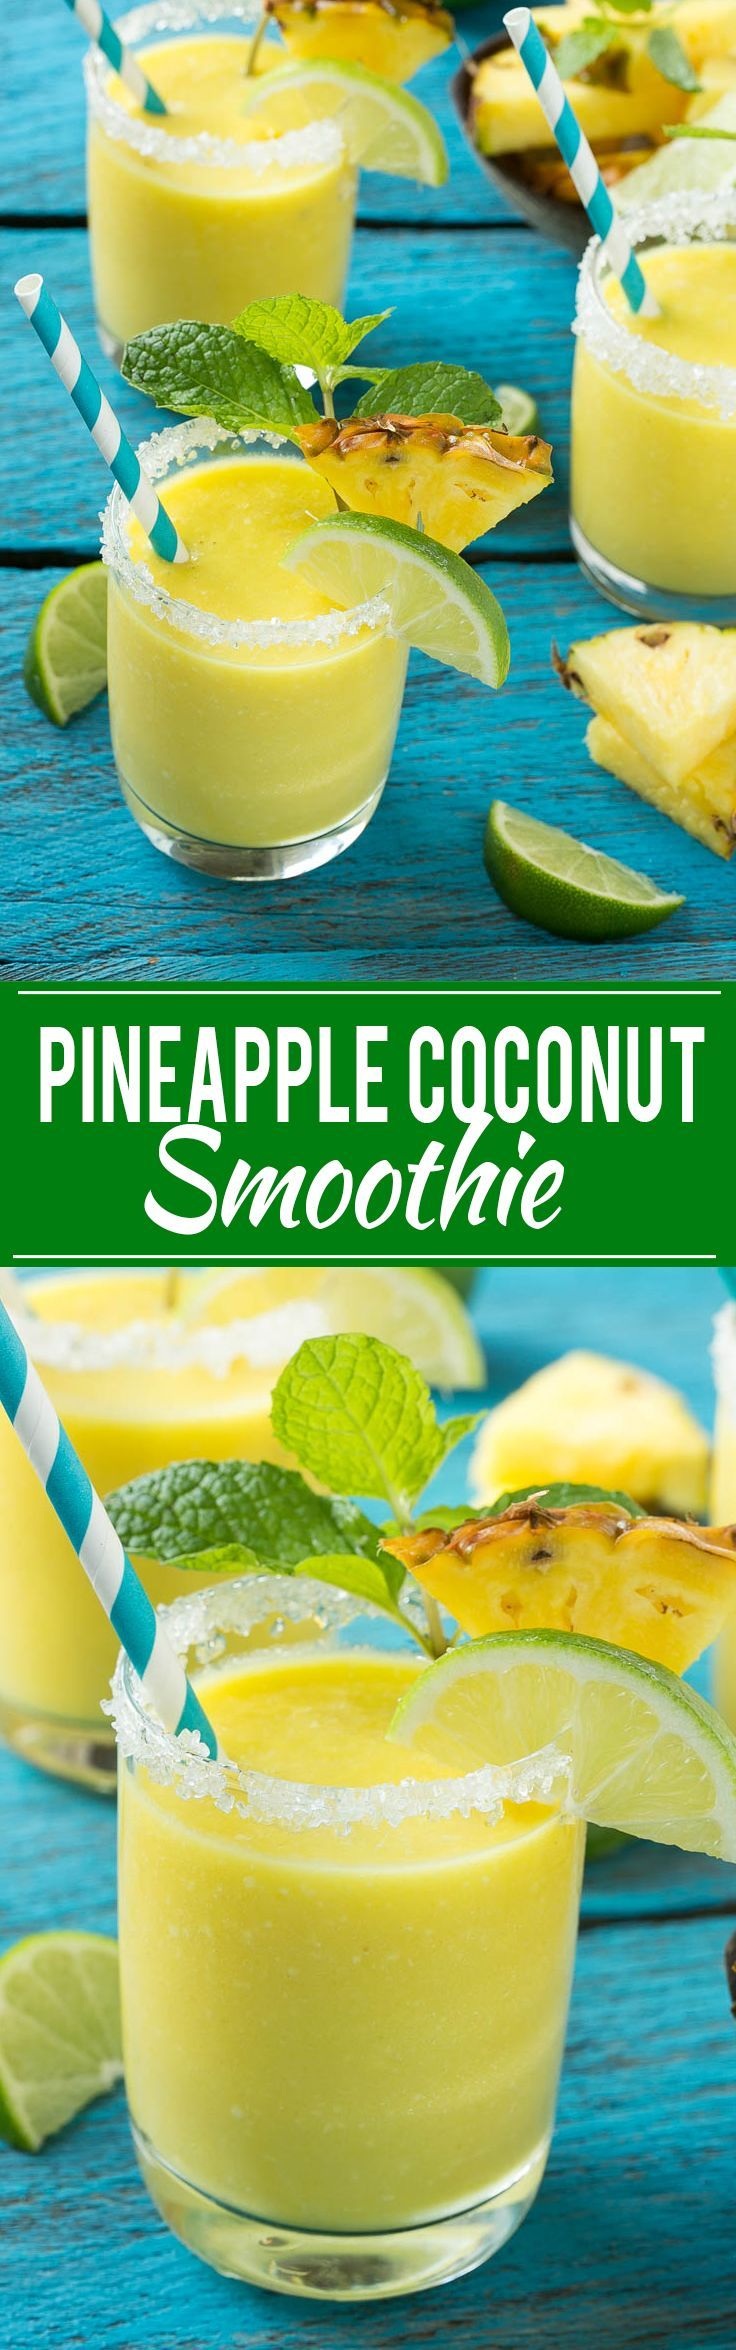 This pineapple coconut smoothie recipe is a tropical fruit delight that's both healthy and refreshing.